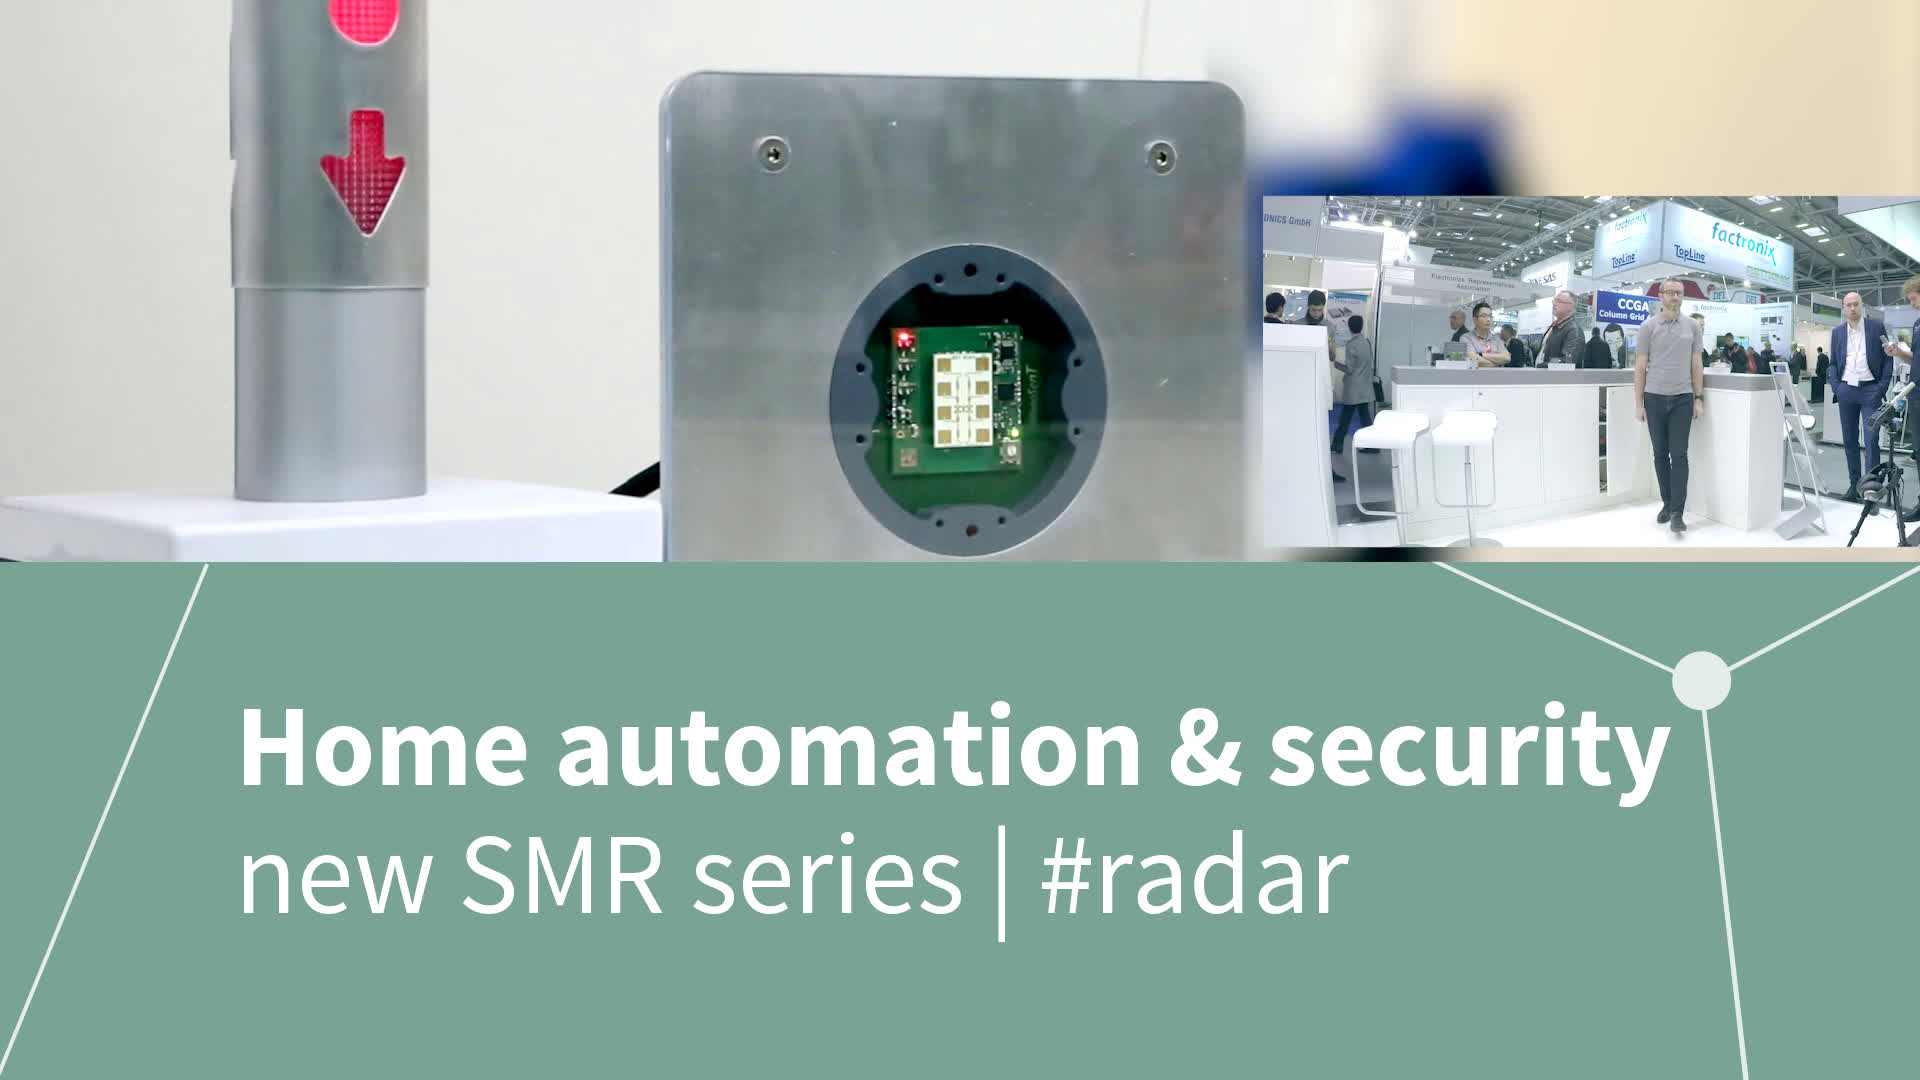 The new SMR series for home automation & security applications from InnoSenT & Infineon